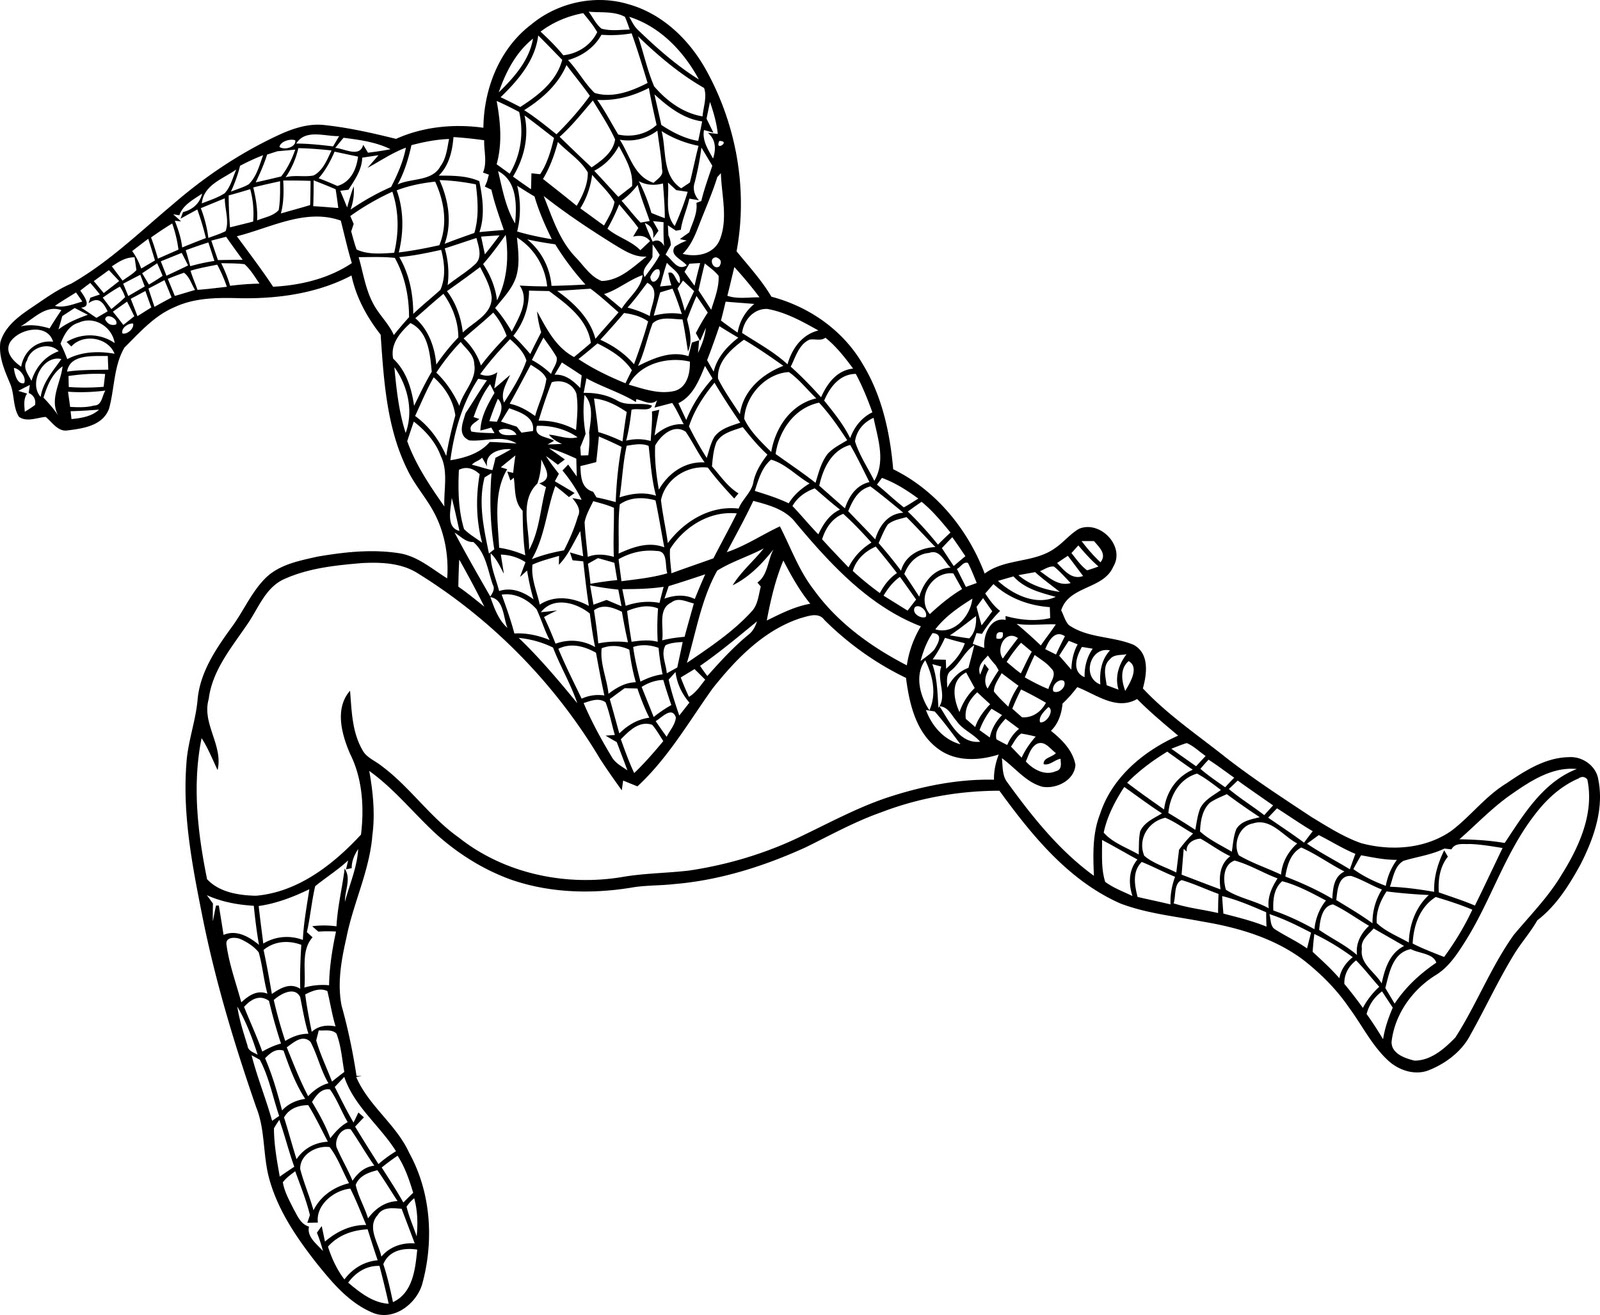 Spiderman spider man christmas clipart kid.